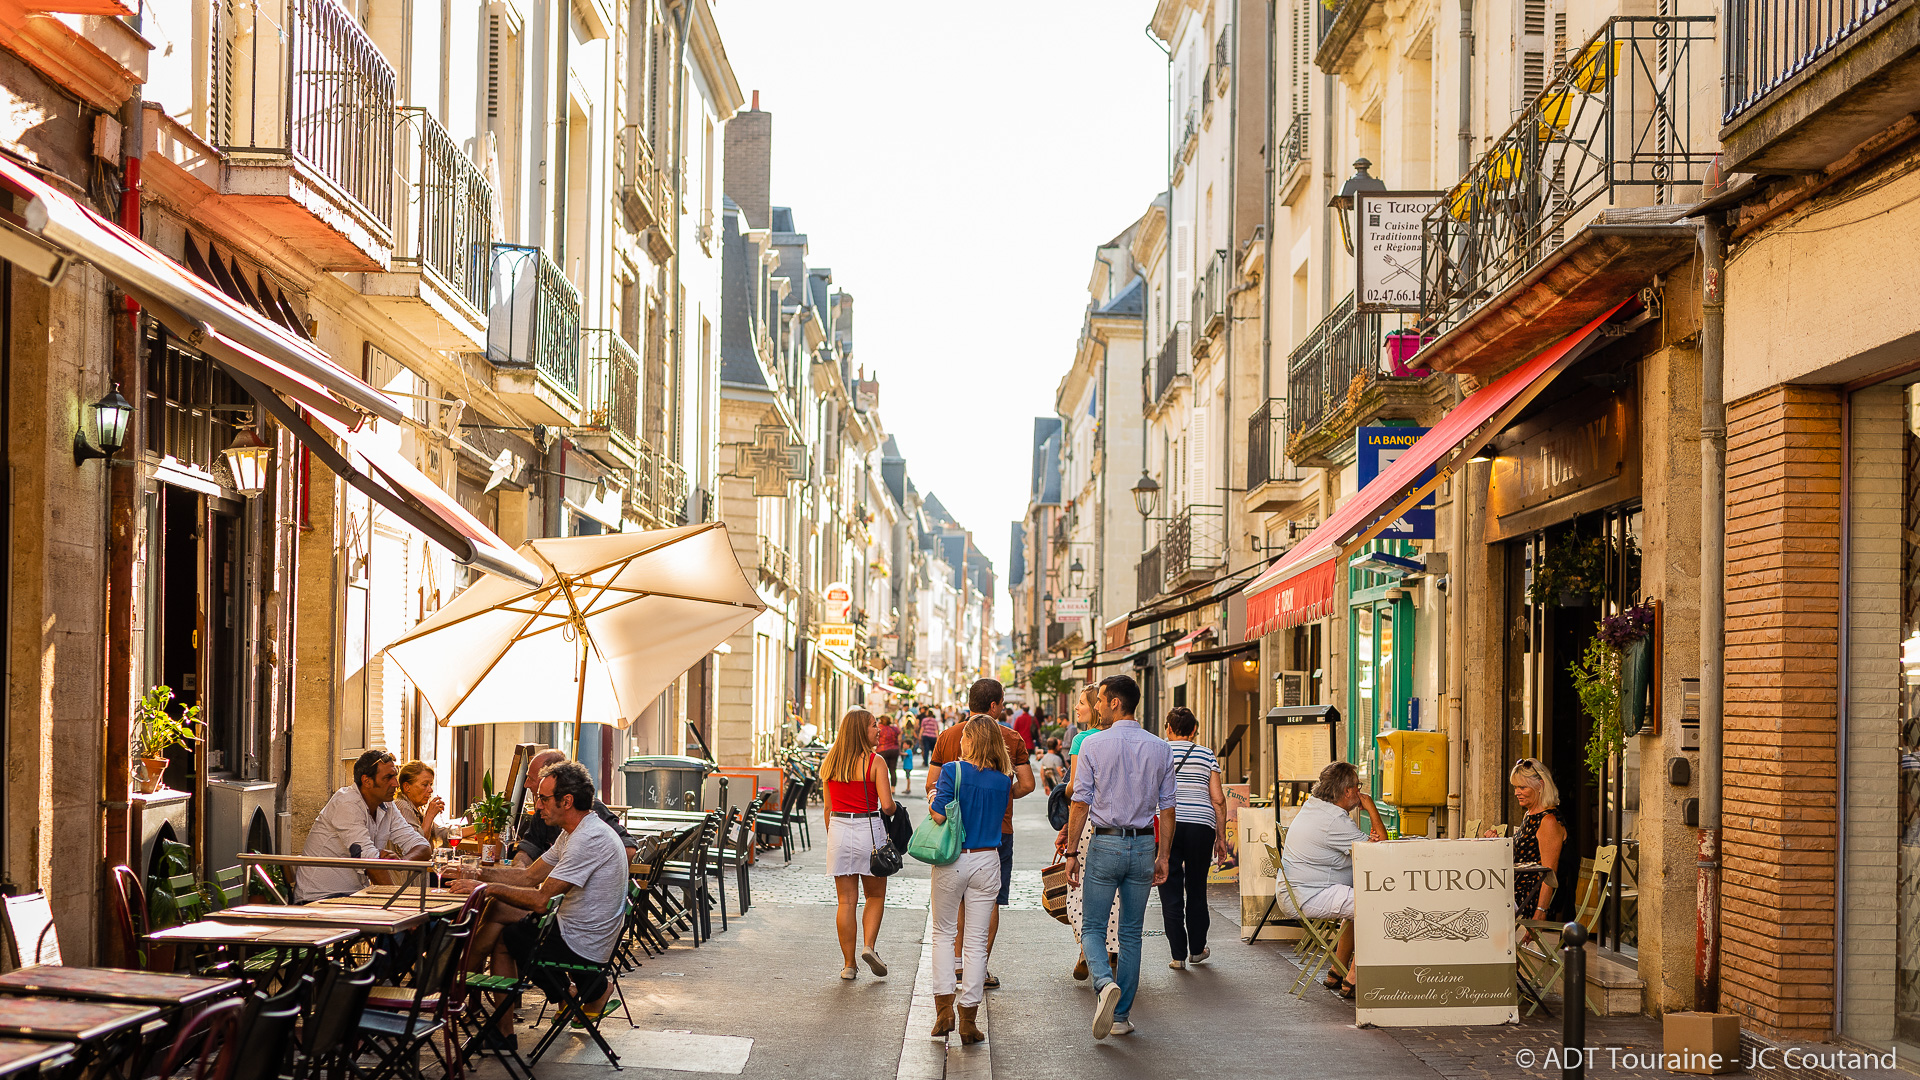 The streets of Tours